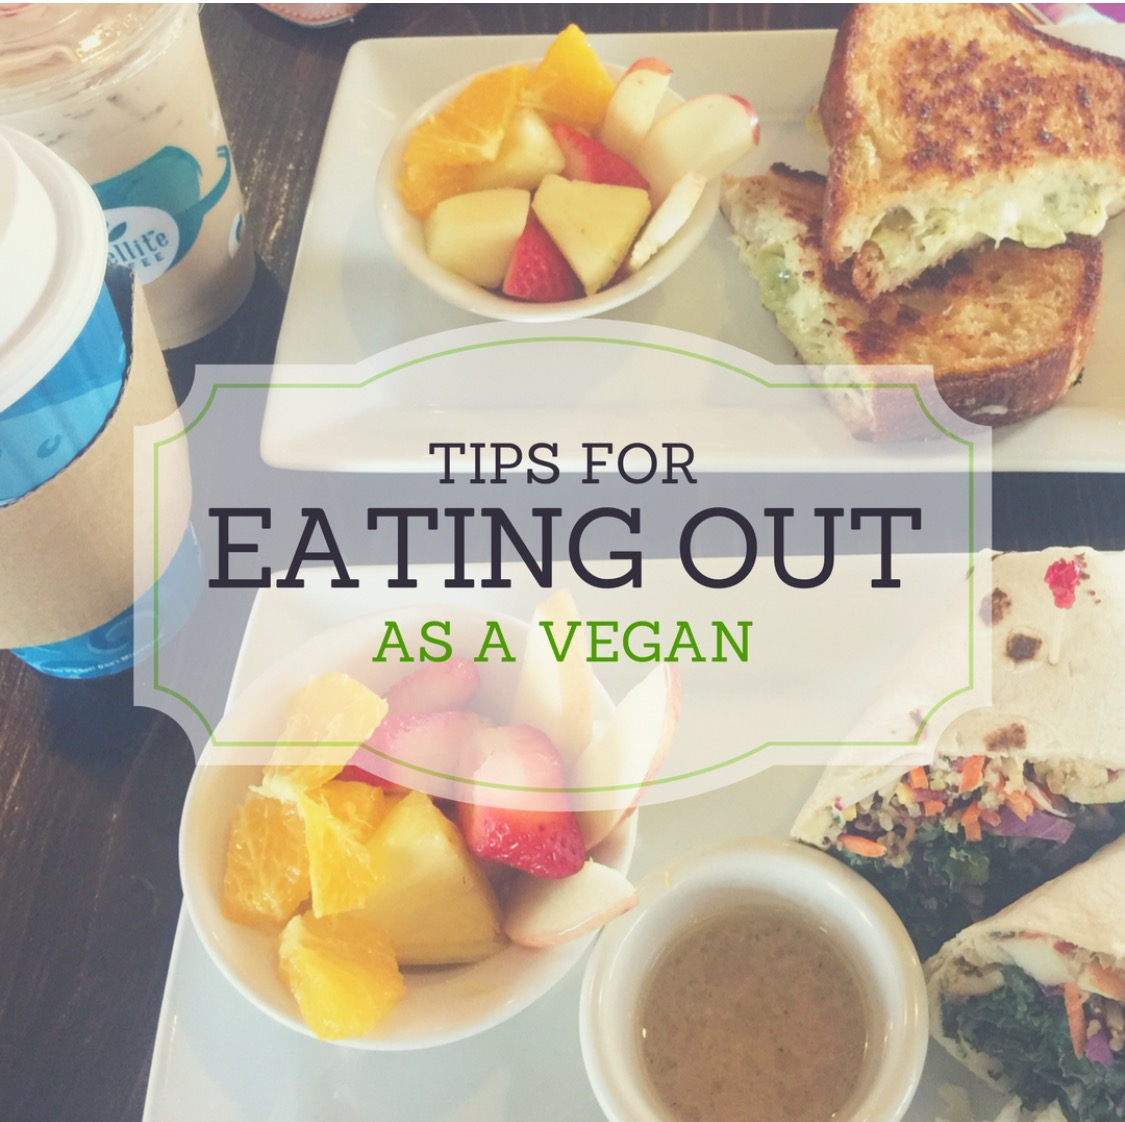 Eating out as a vegan: Tips